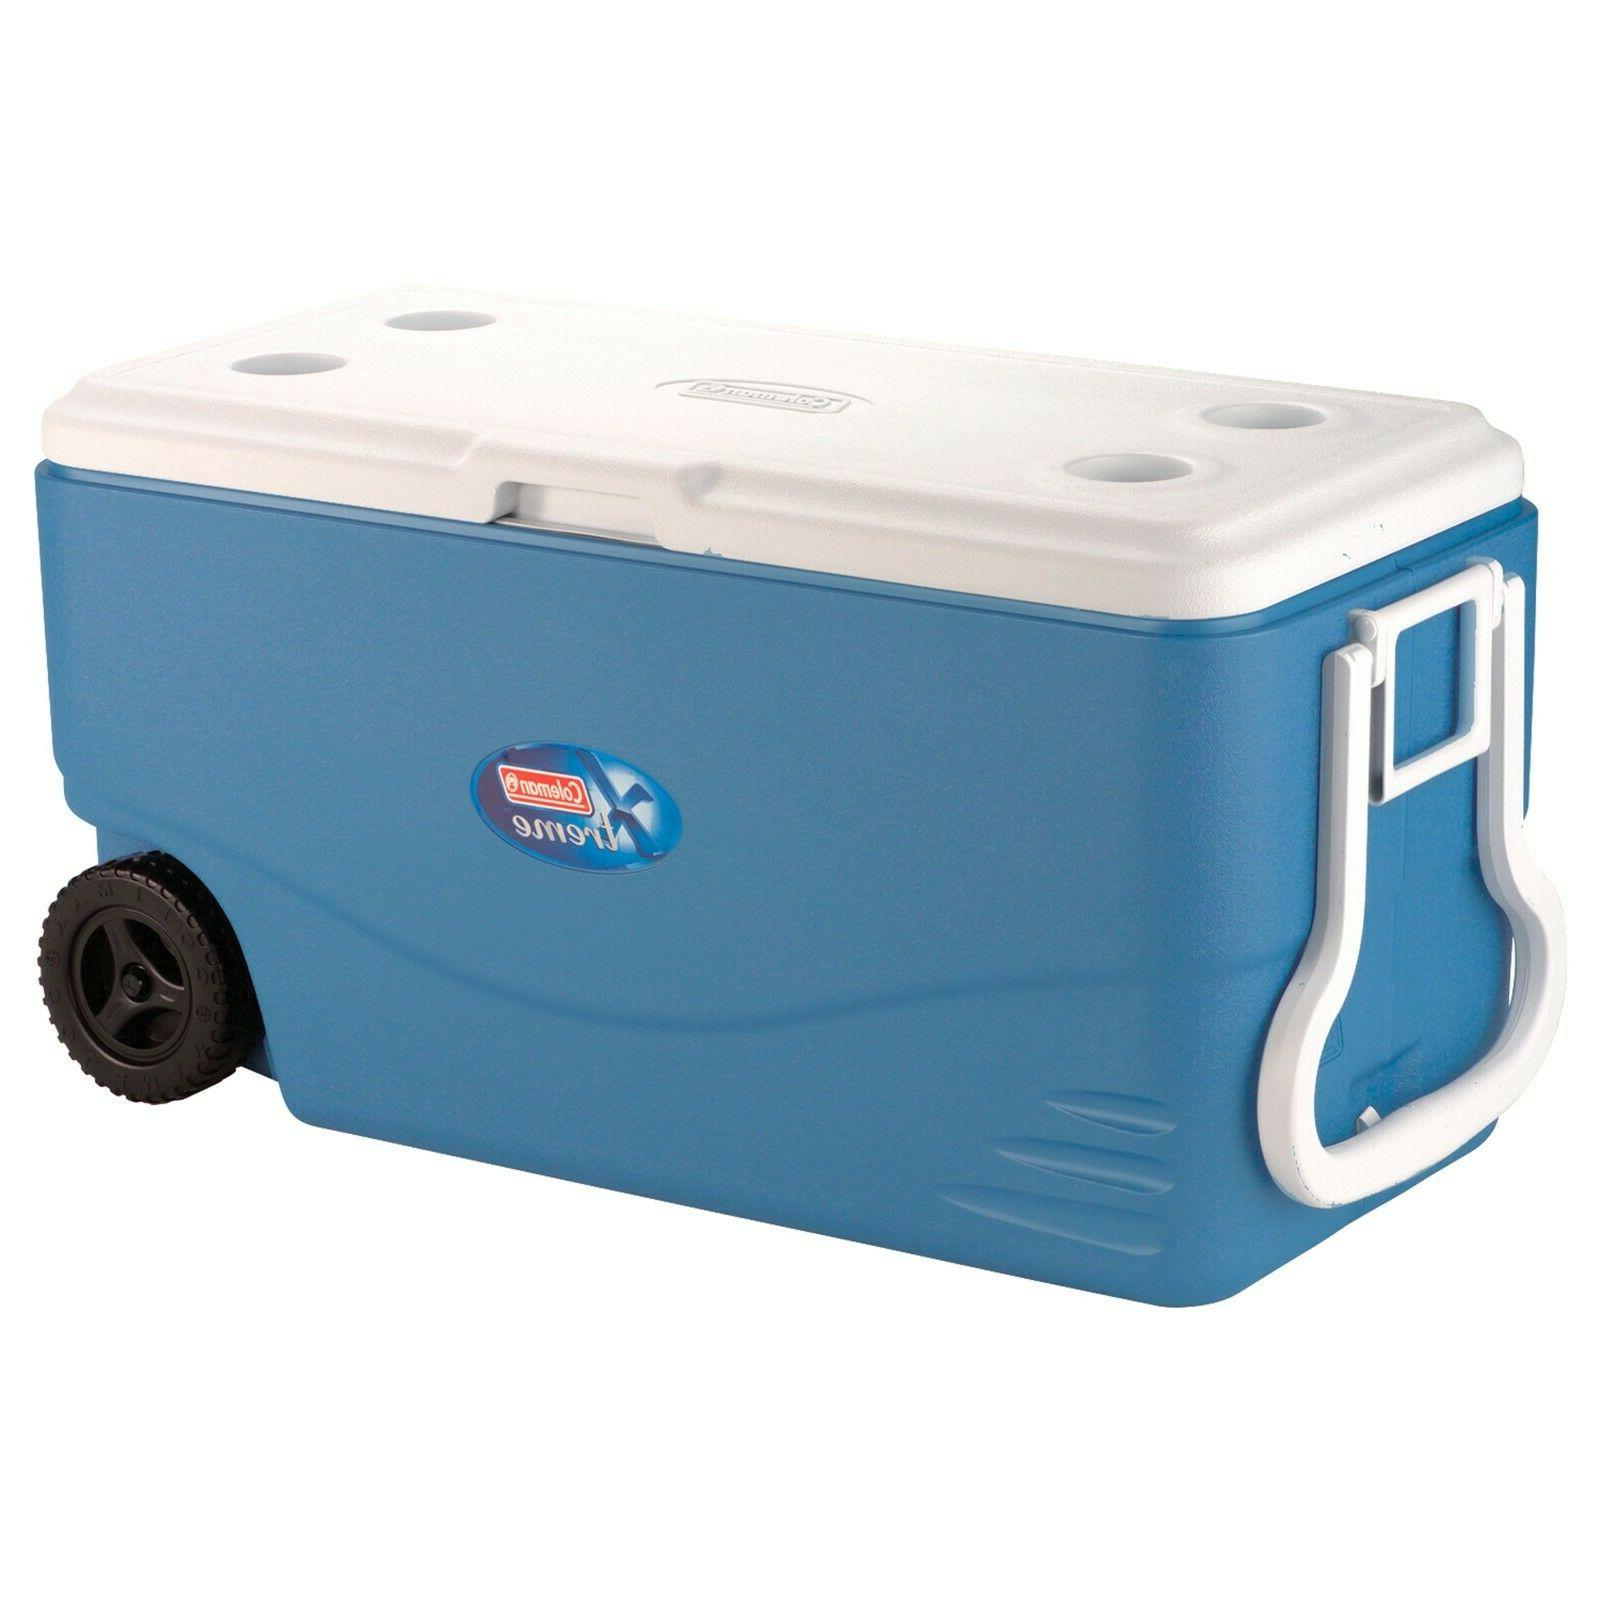 100 Quart Xtreme Day Duty with Wheels, Blue, Ice To